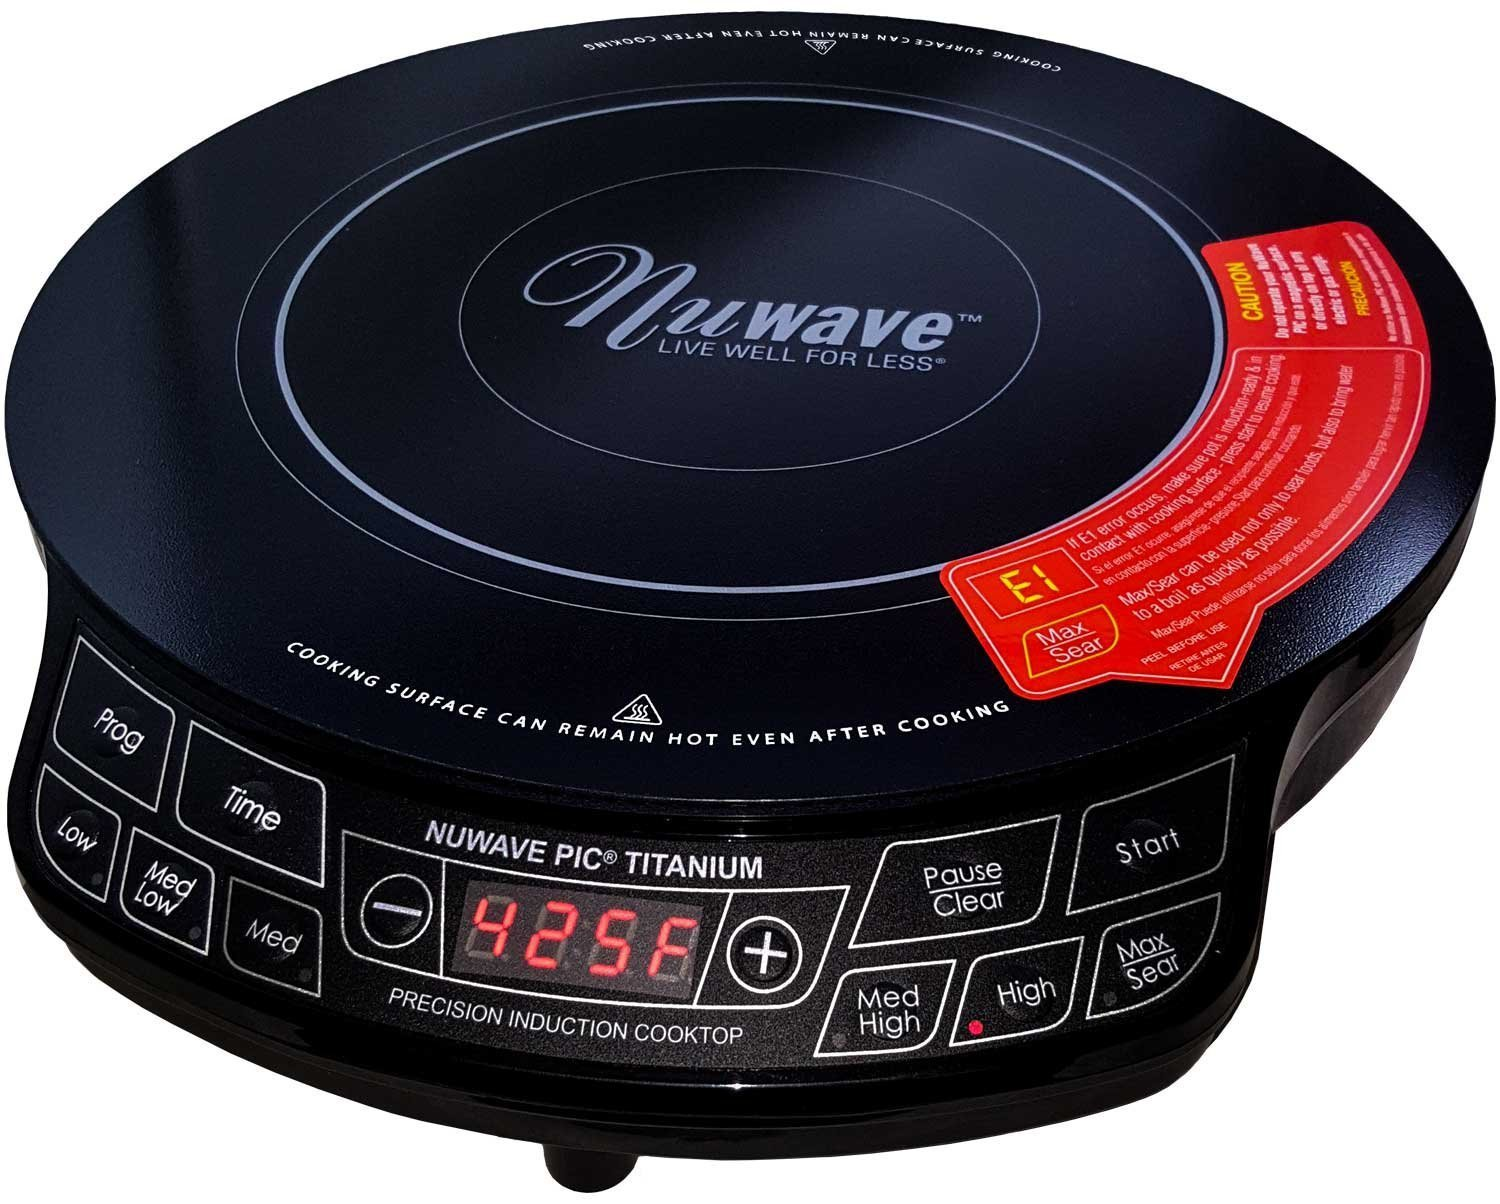 NuWave PIC 1800W Portable Induction Cooktop Countertop Burner, Titanium by NuWave